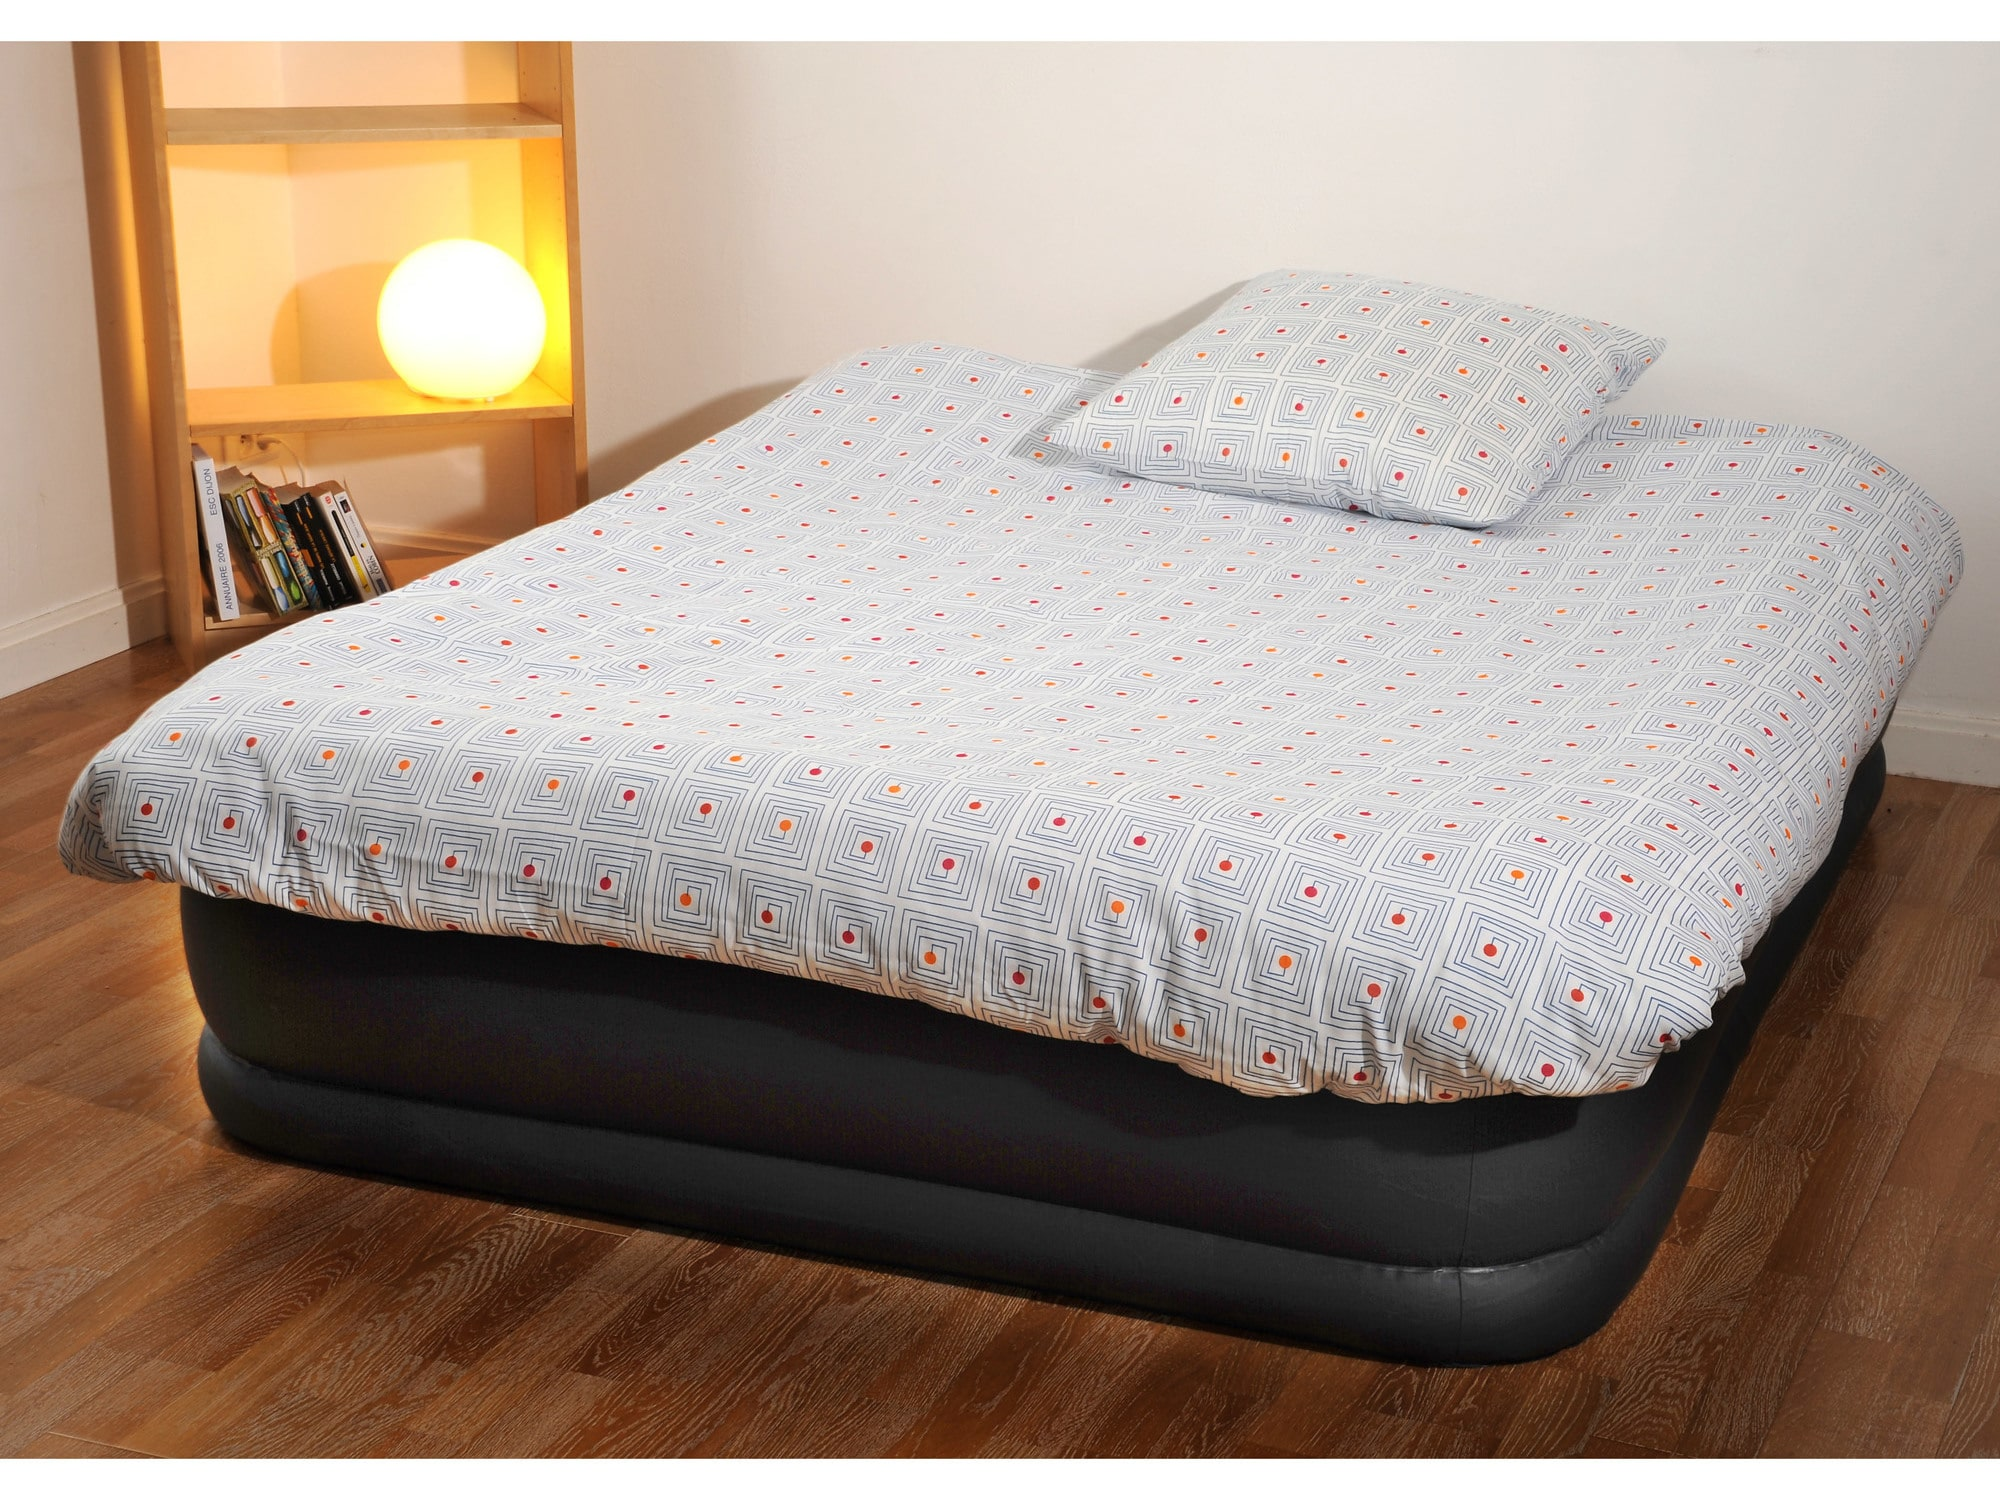 les matelas gonflables de la marque intex startup caf. Black Bedroom Furniture Sets. Home Design Ideas